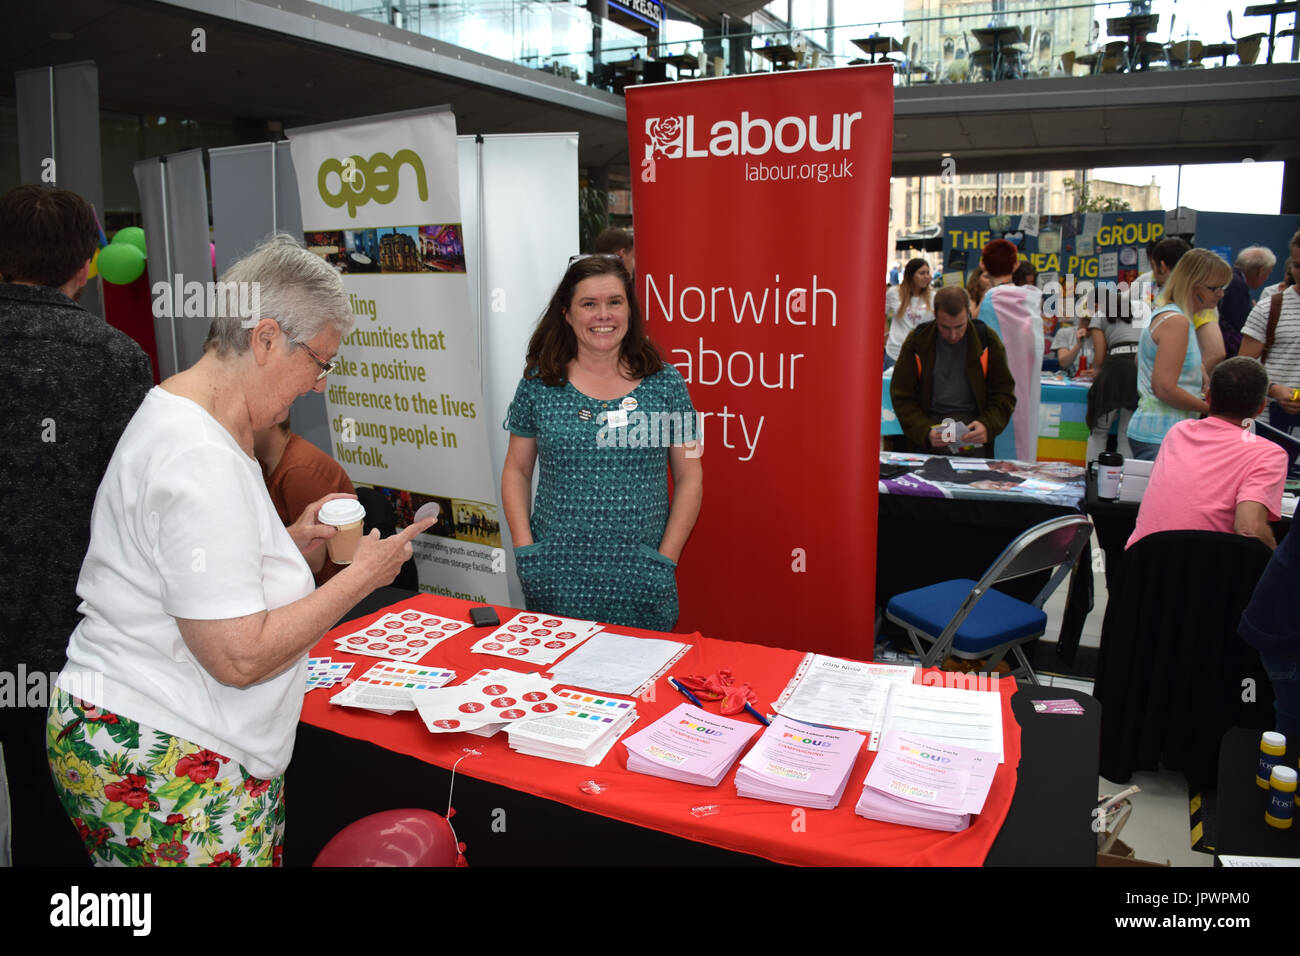 Labour Party stall at Pride 2017, Norwich UK, 29 July 2017 - Stock Image